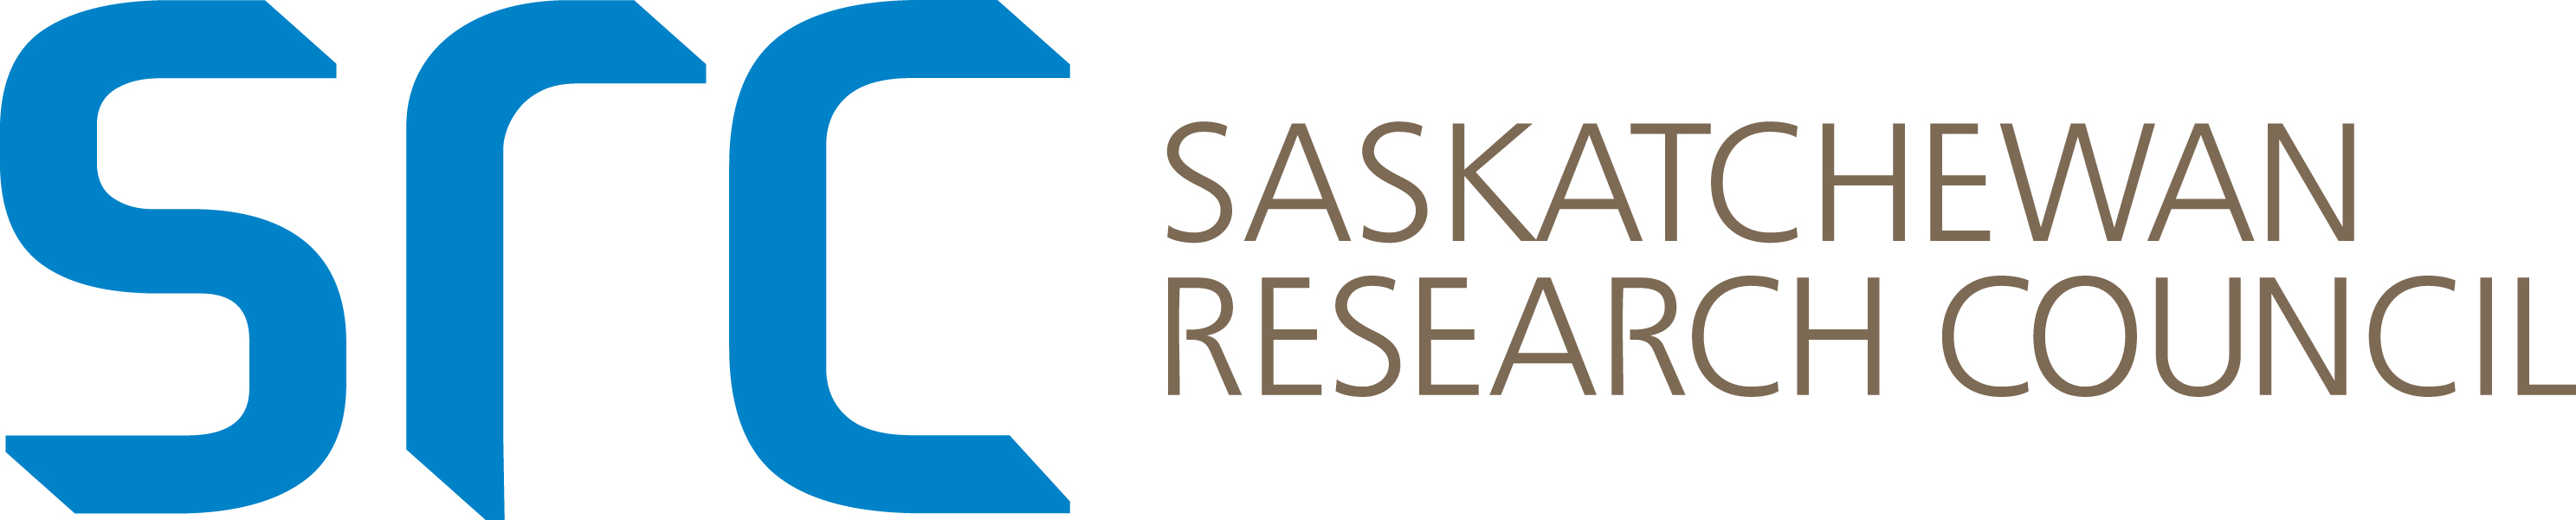 Sask Research Council